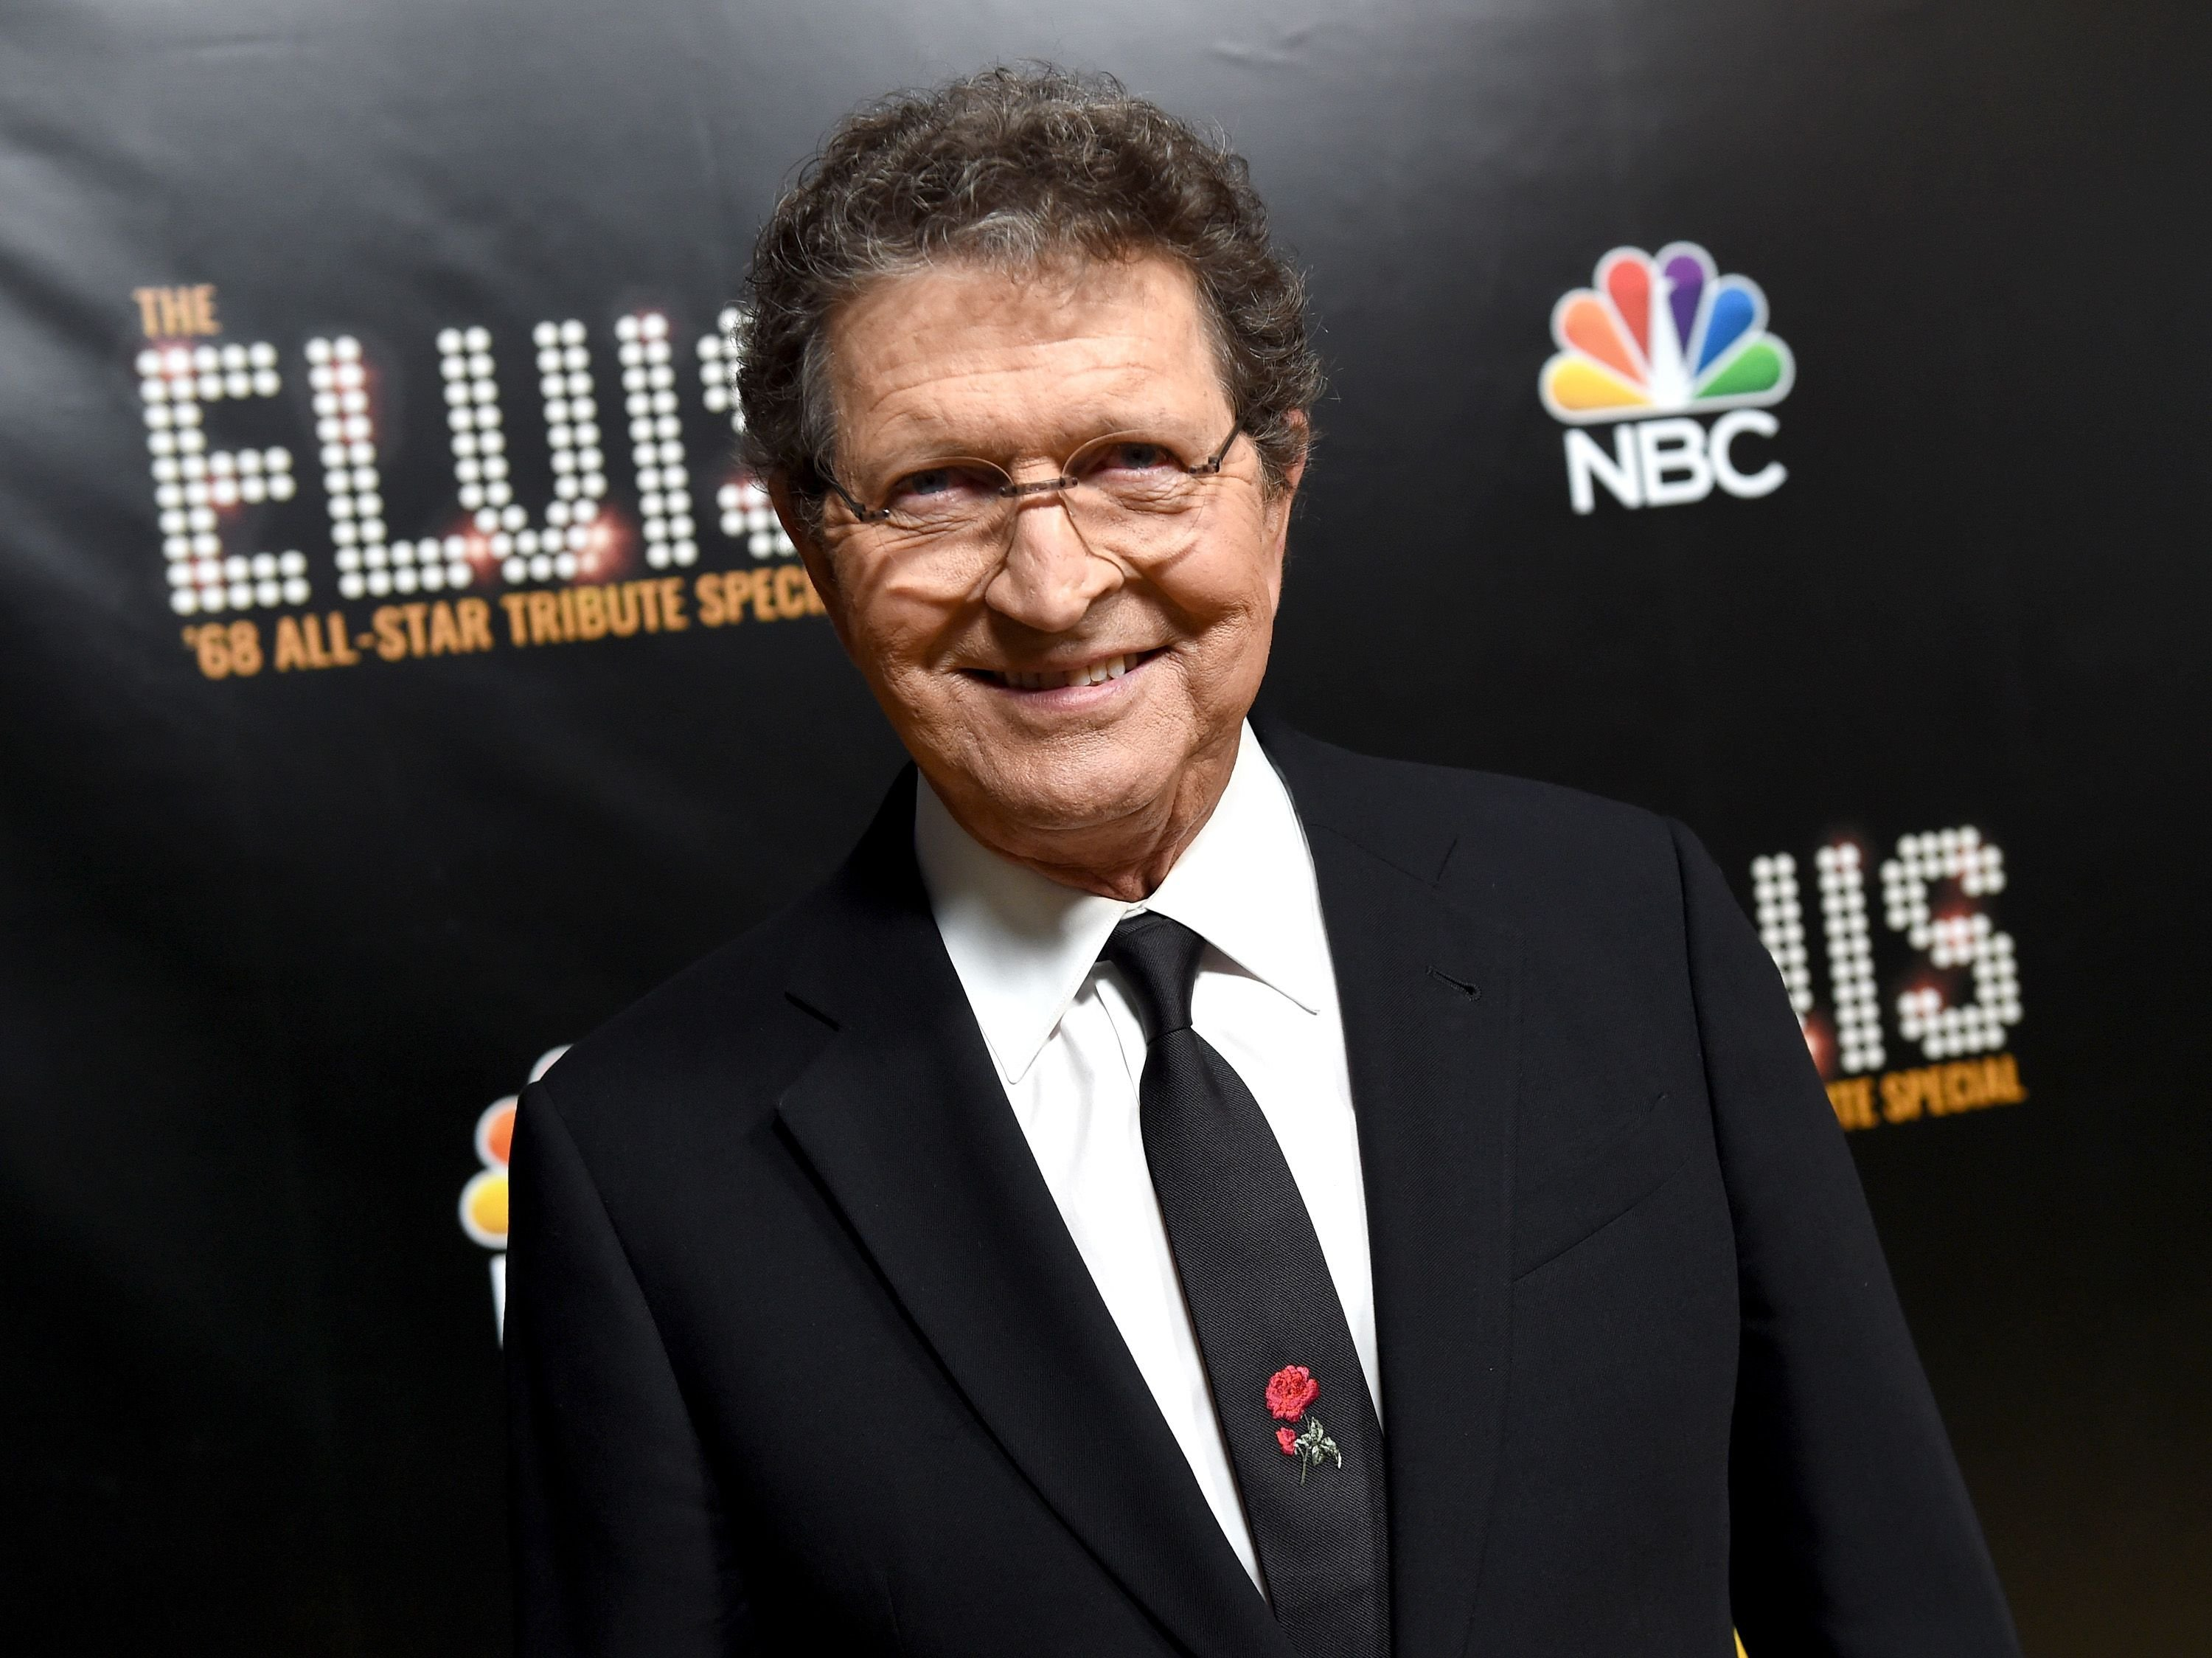 Mac Davis at The Elvis '68 All-Star Tribute Special at Universal Studios on October 11, 2018 | Photo: Getty Images